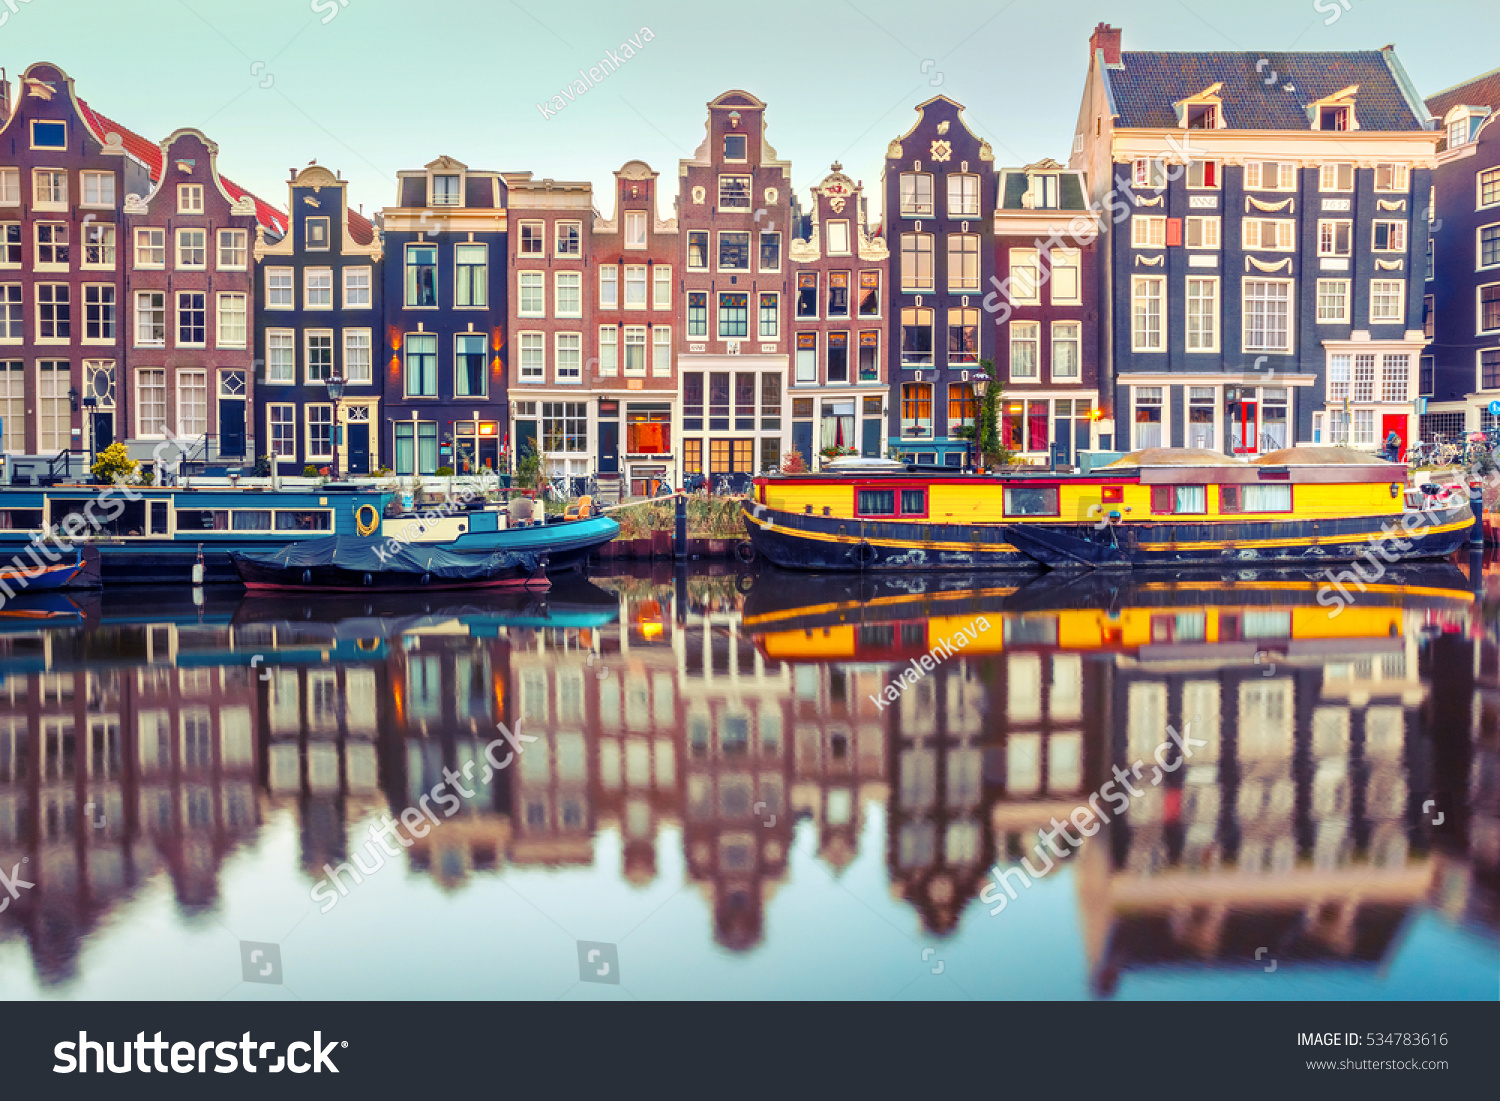 amsterdam canal singel typical dutch houses stock photo. Black Bedroom Furniture Sets. Home Design Ideas